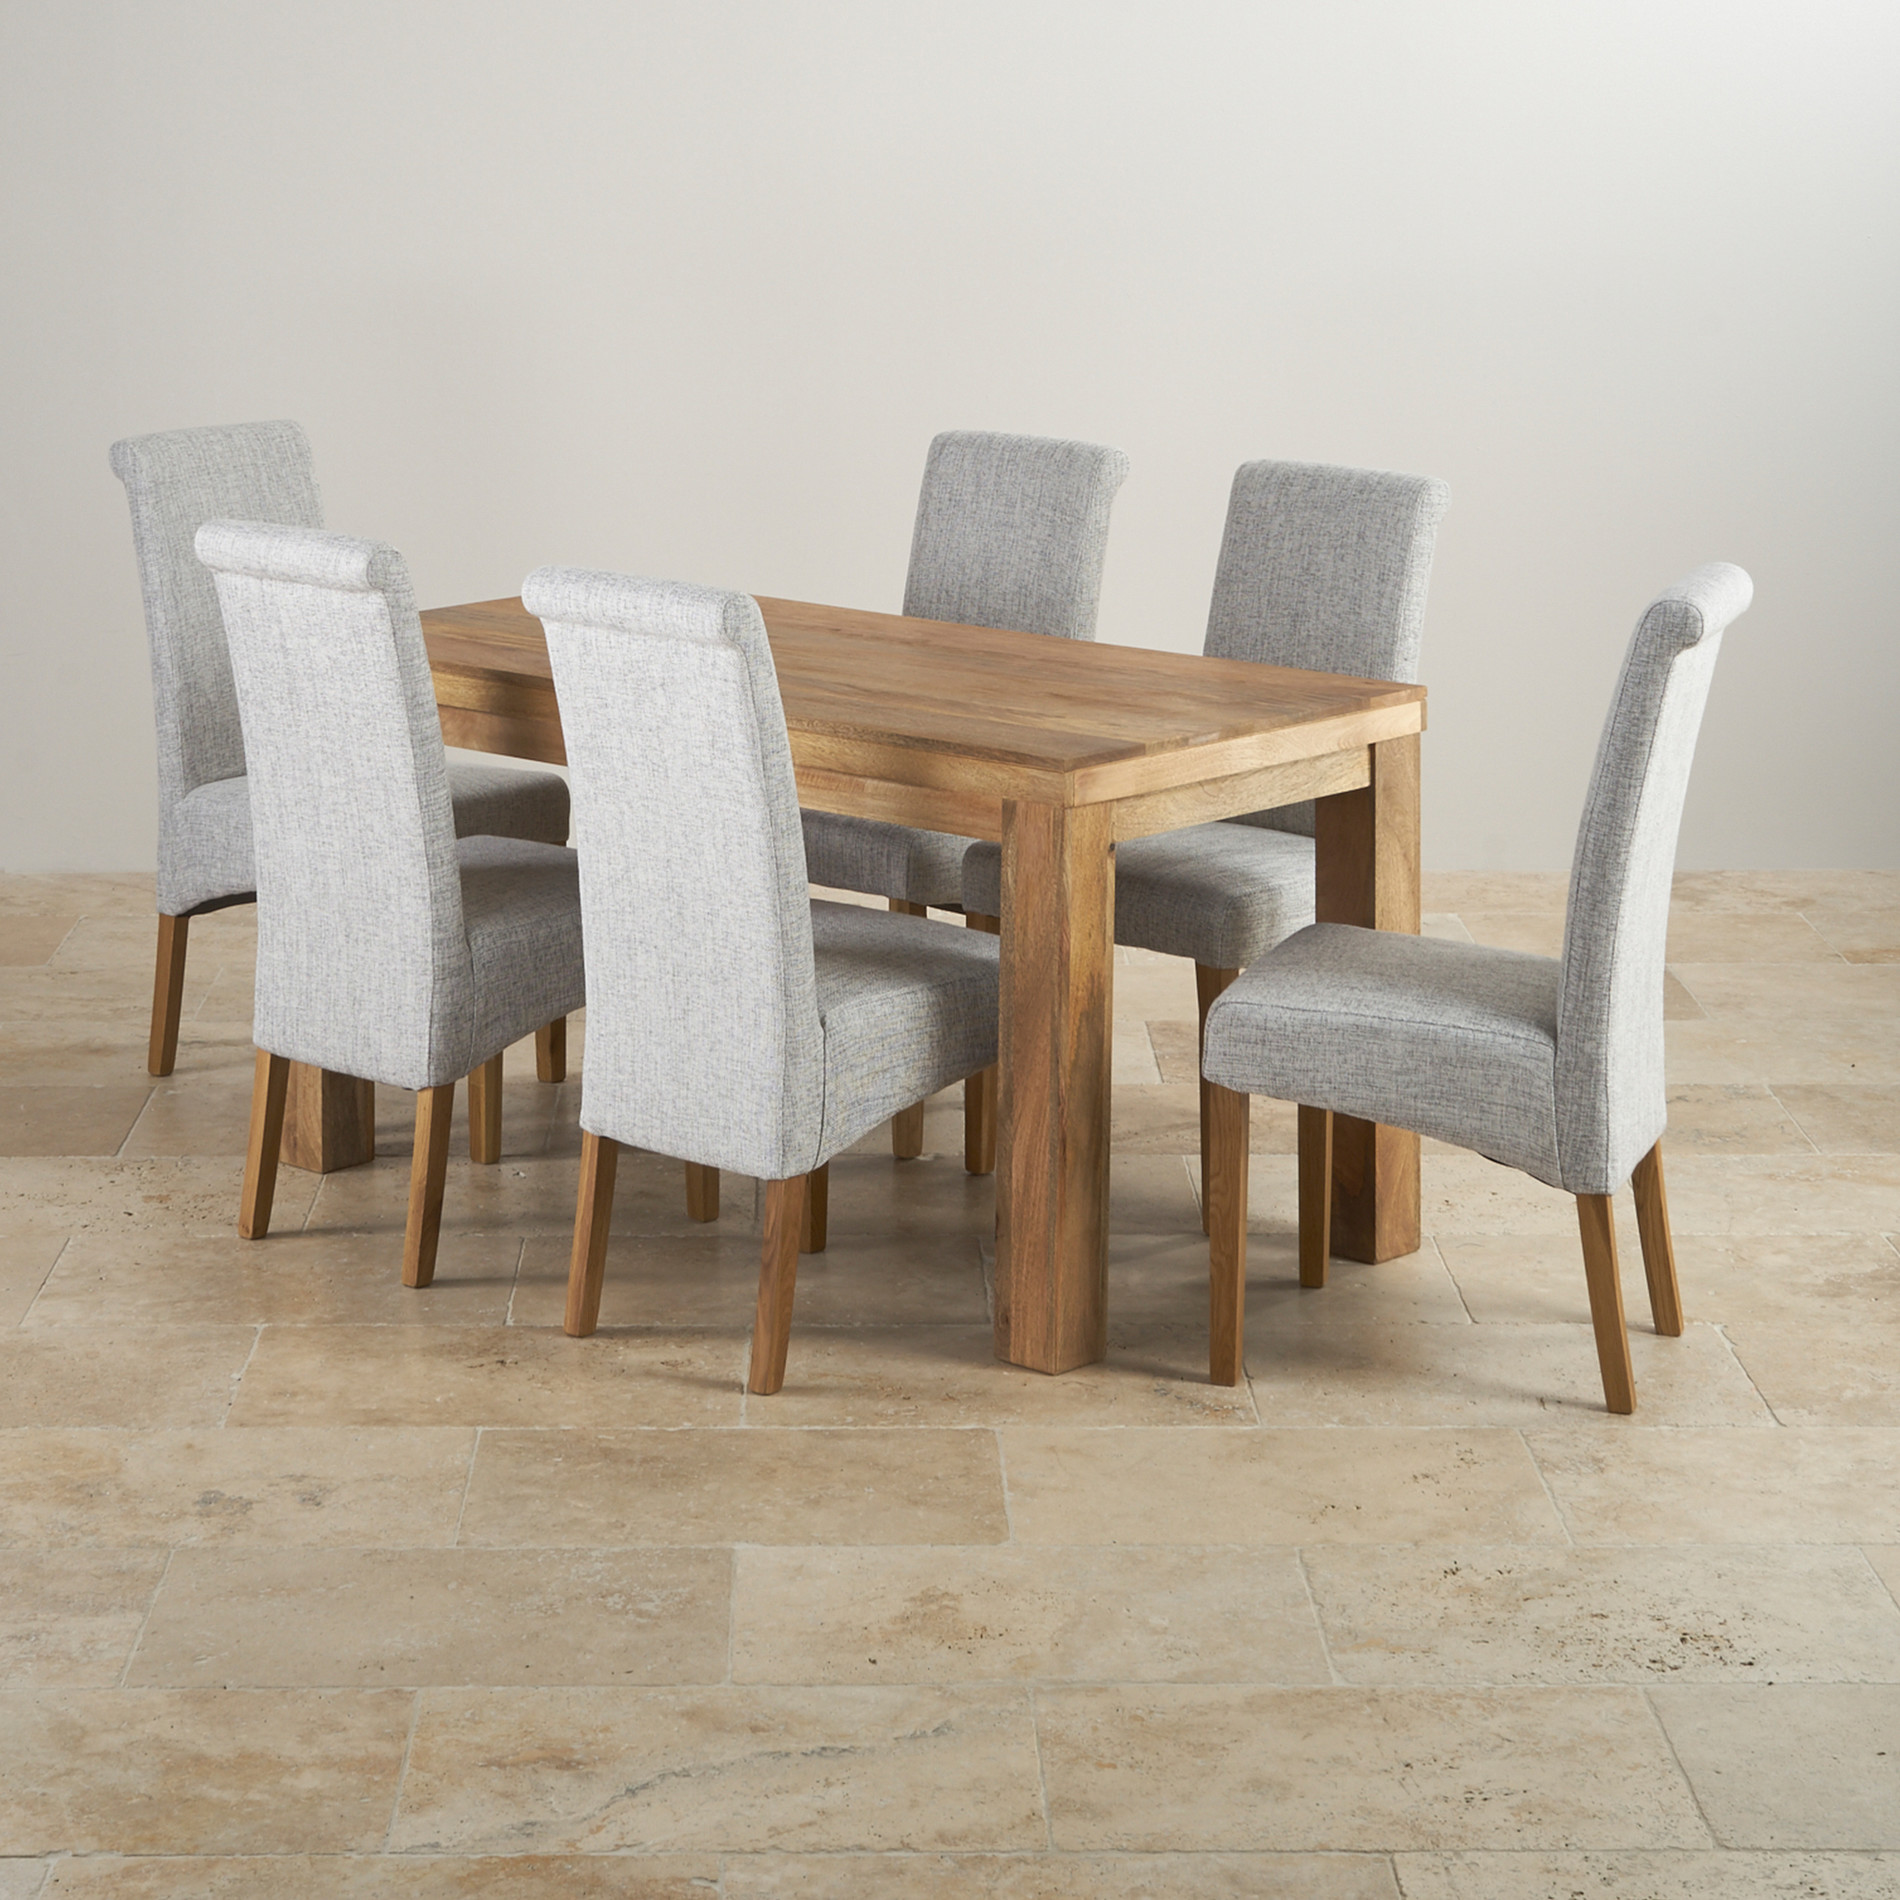 Mantis light mango dining set 5ft table with 6 chairs for 5ft dining room table